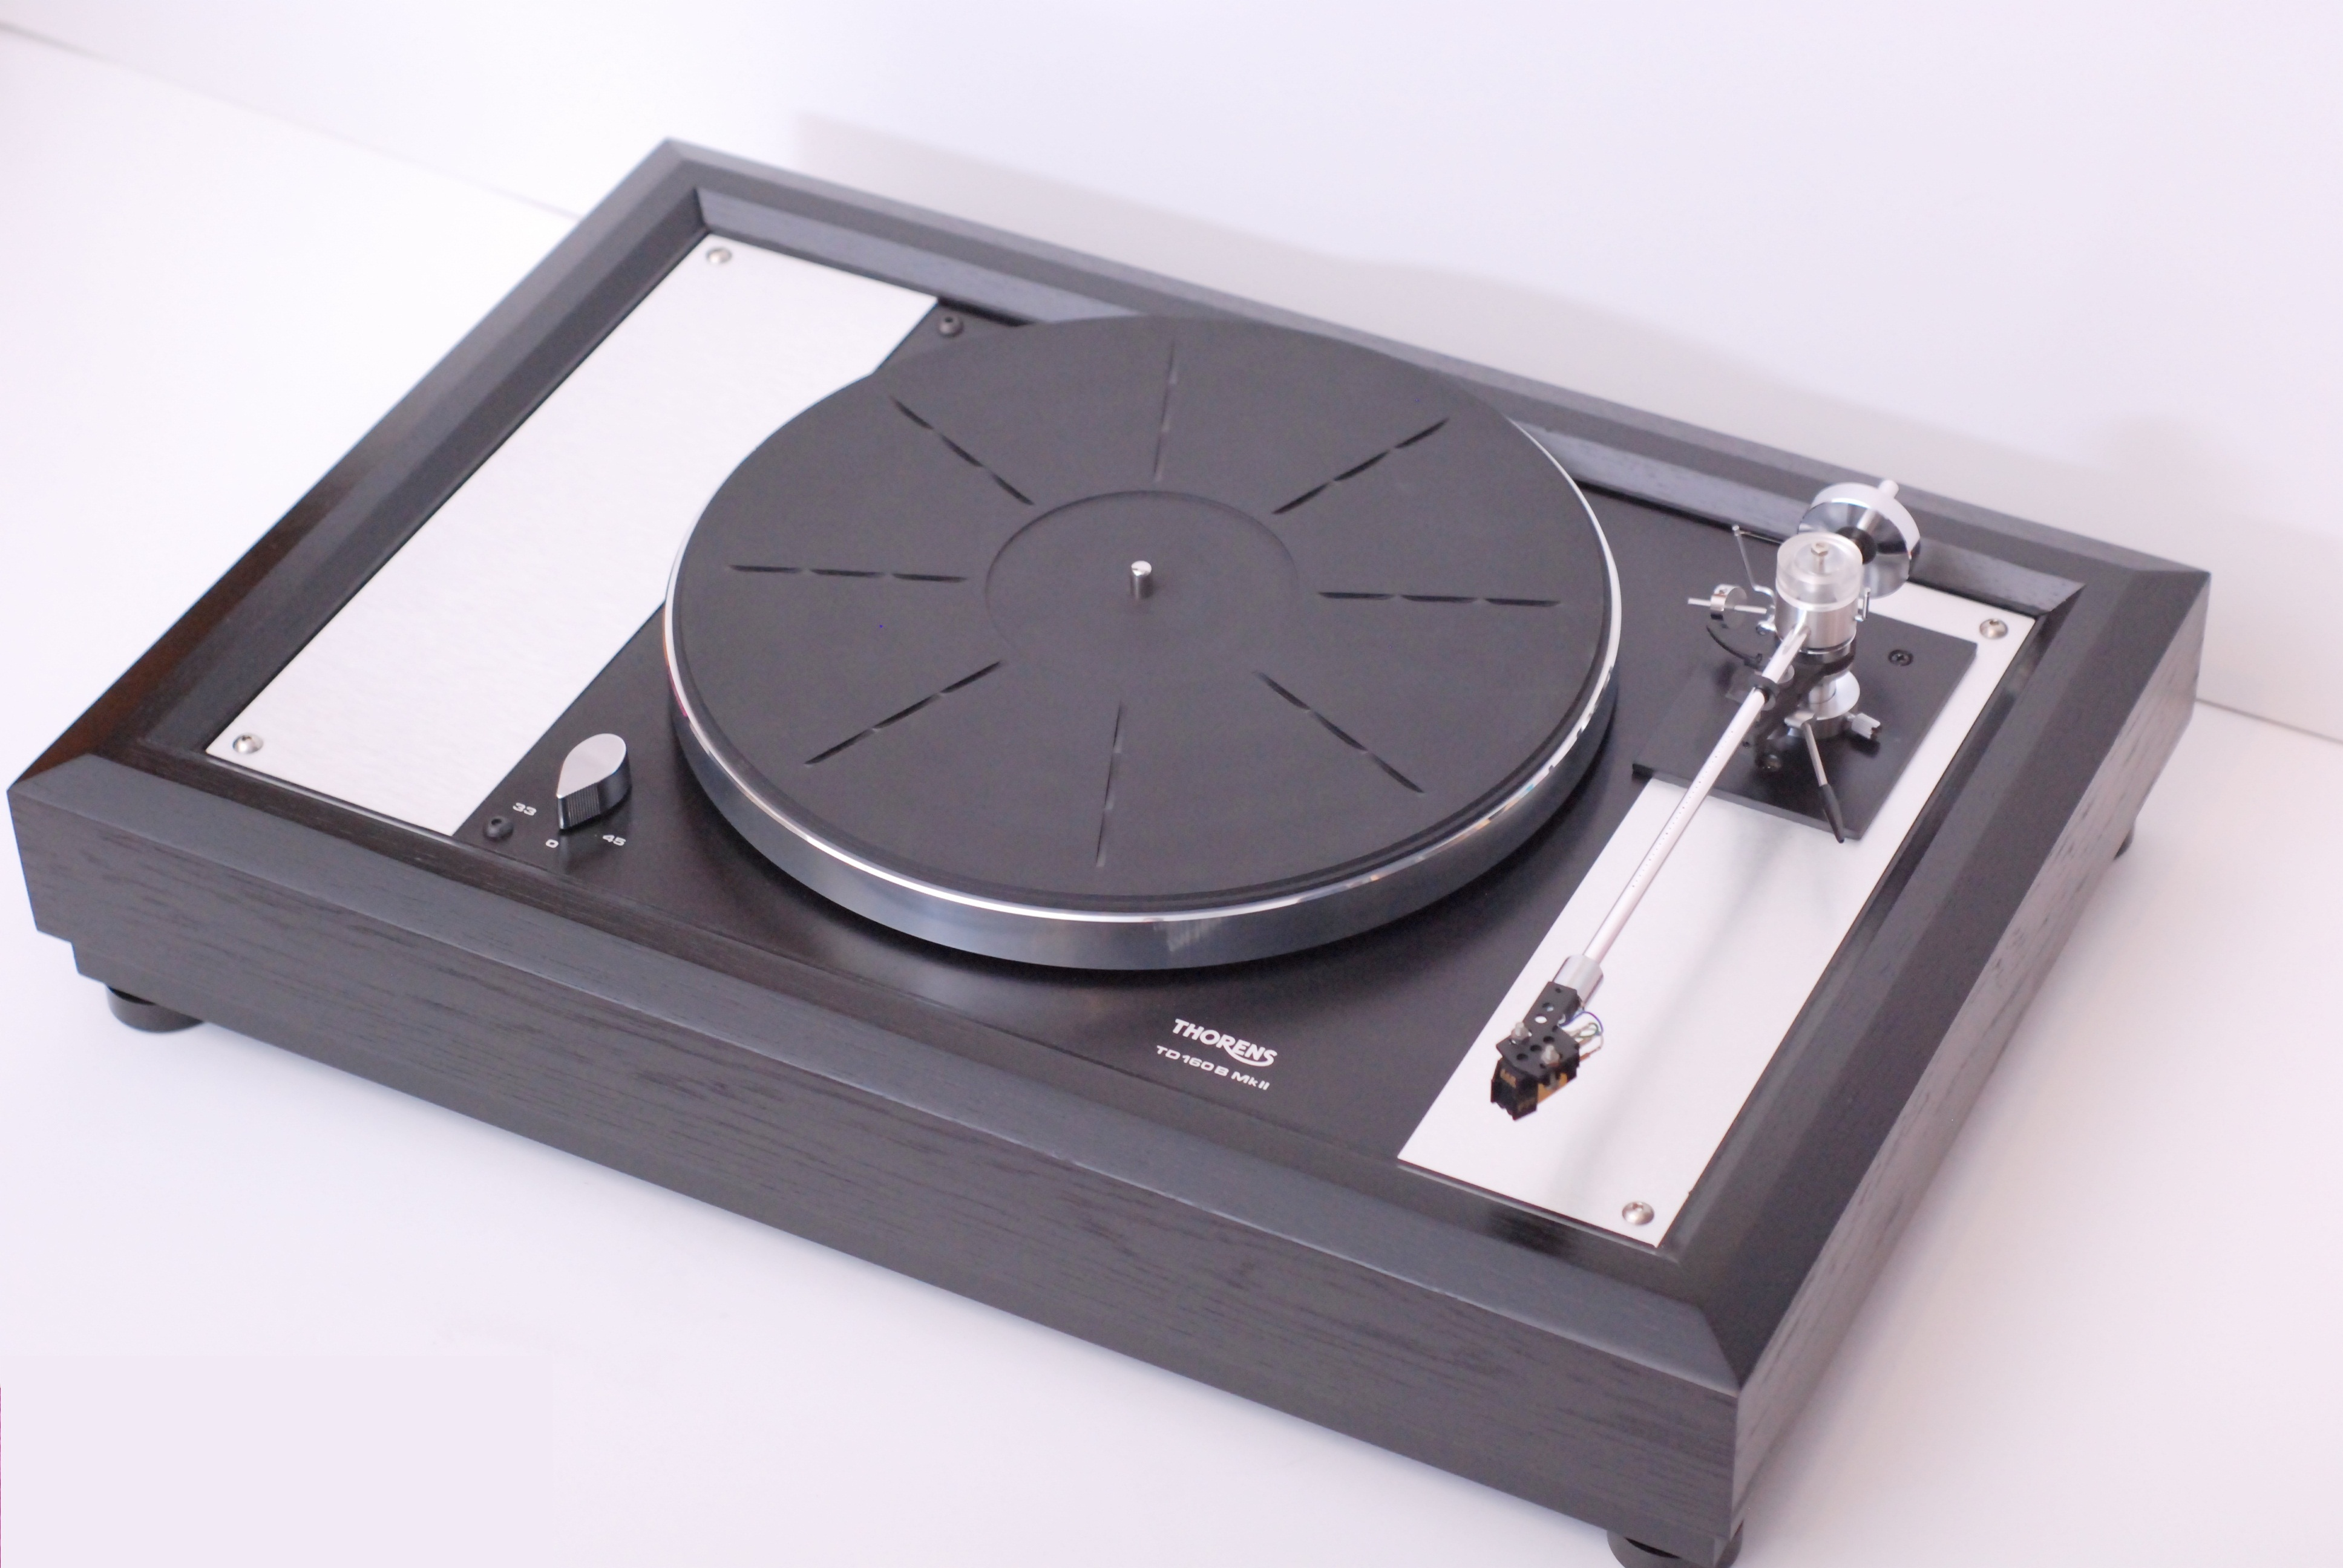 Customers Acoustand Plinths & Turntables - Acoustand Audio